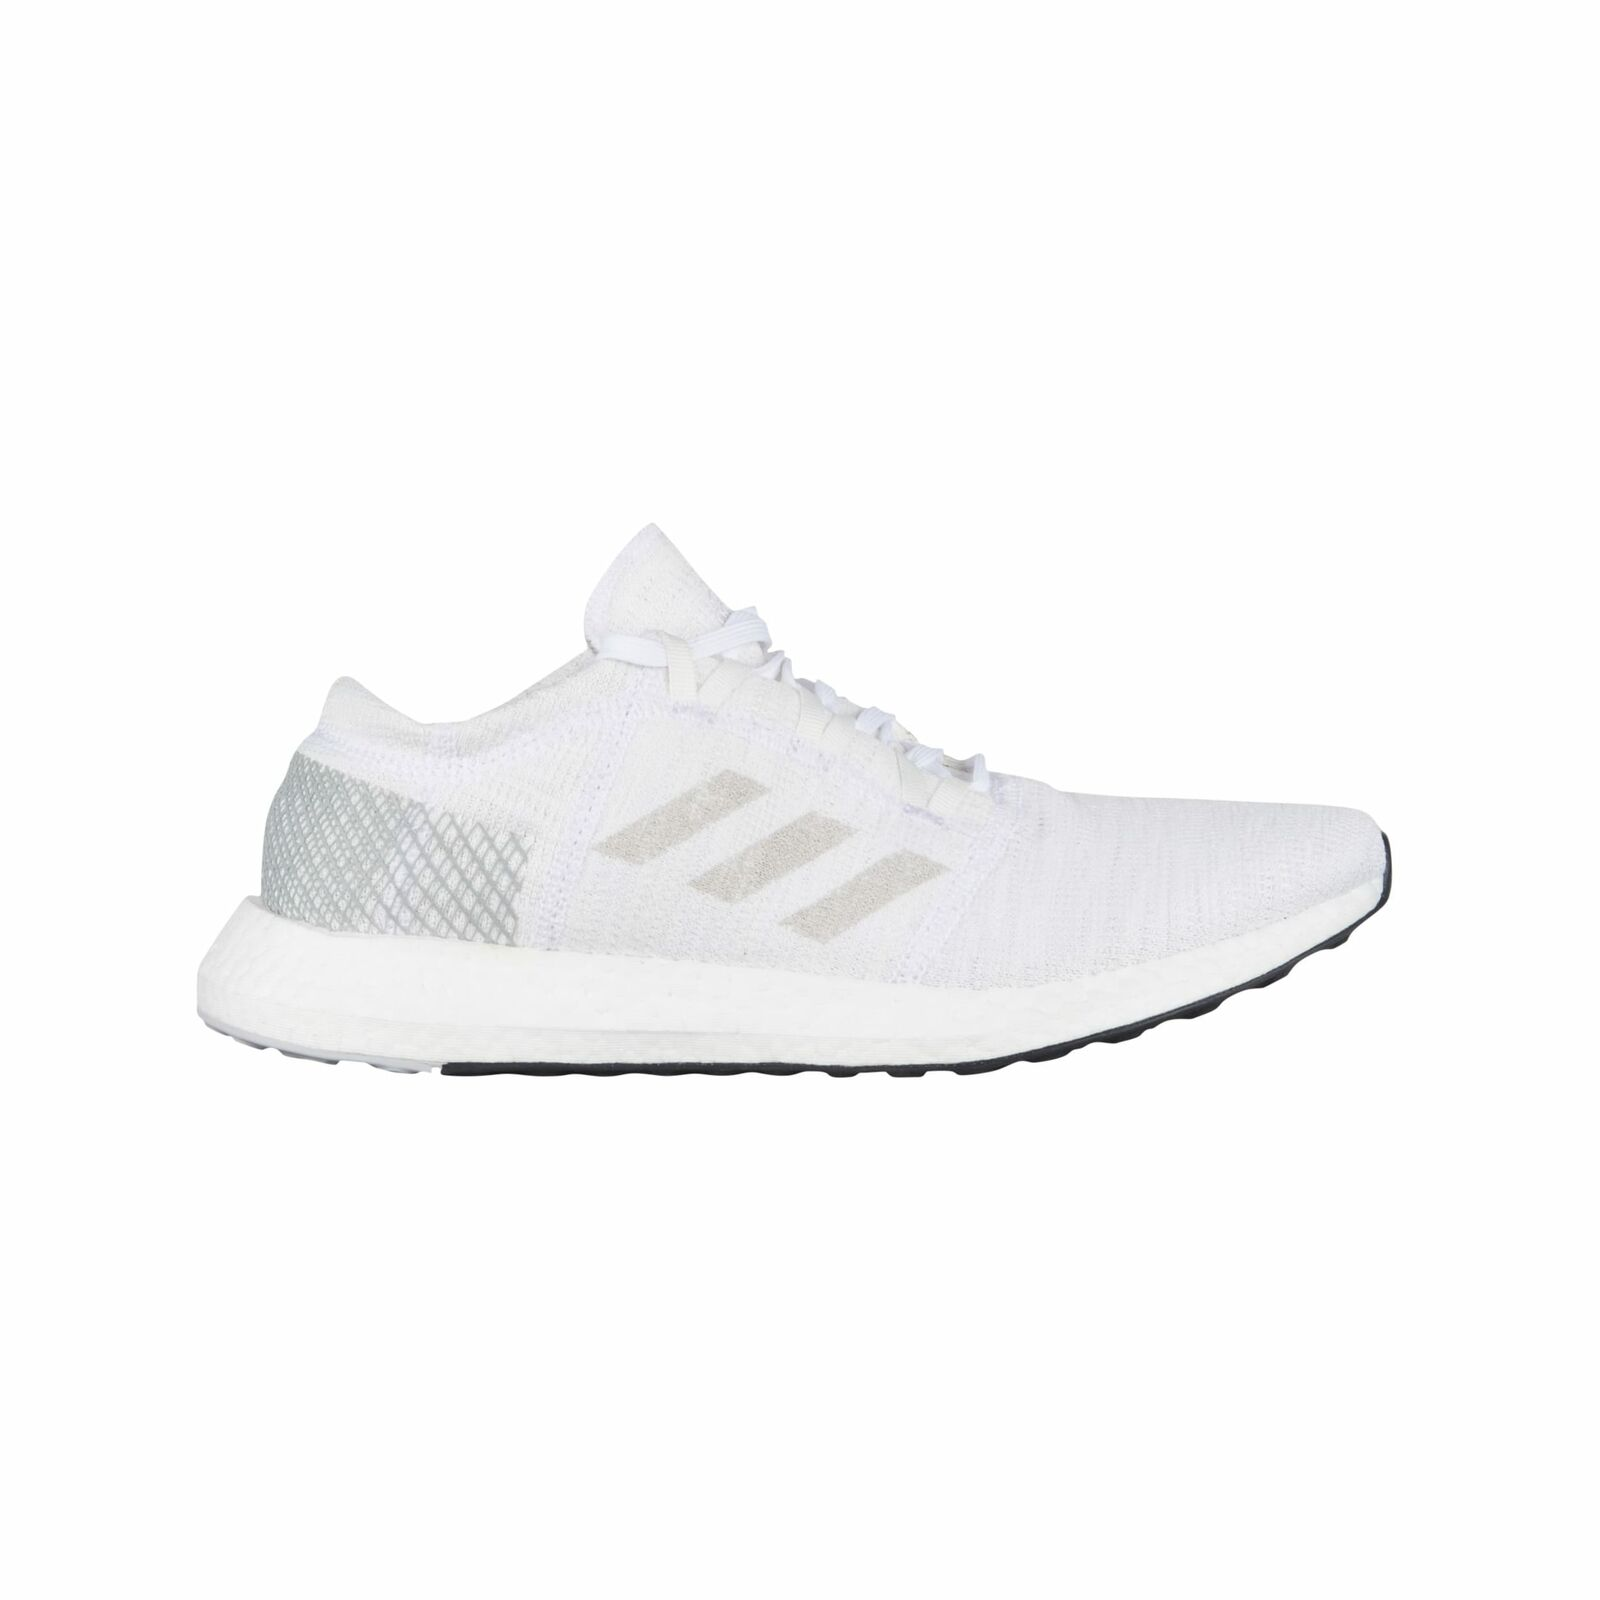 b8572f241 Adidas Go - Men s Footwear Grey One Grey Two AH2311 White Pureboost ...